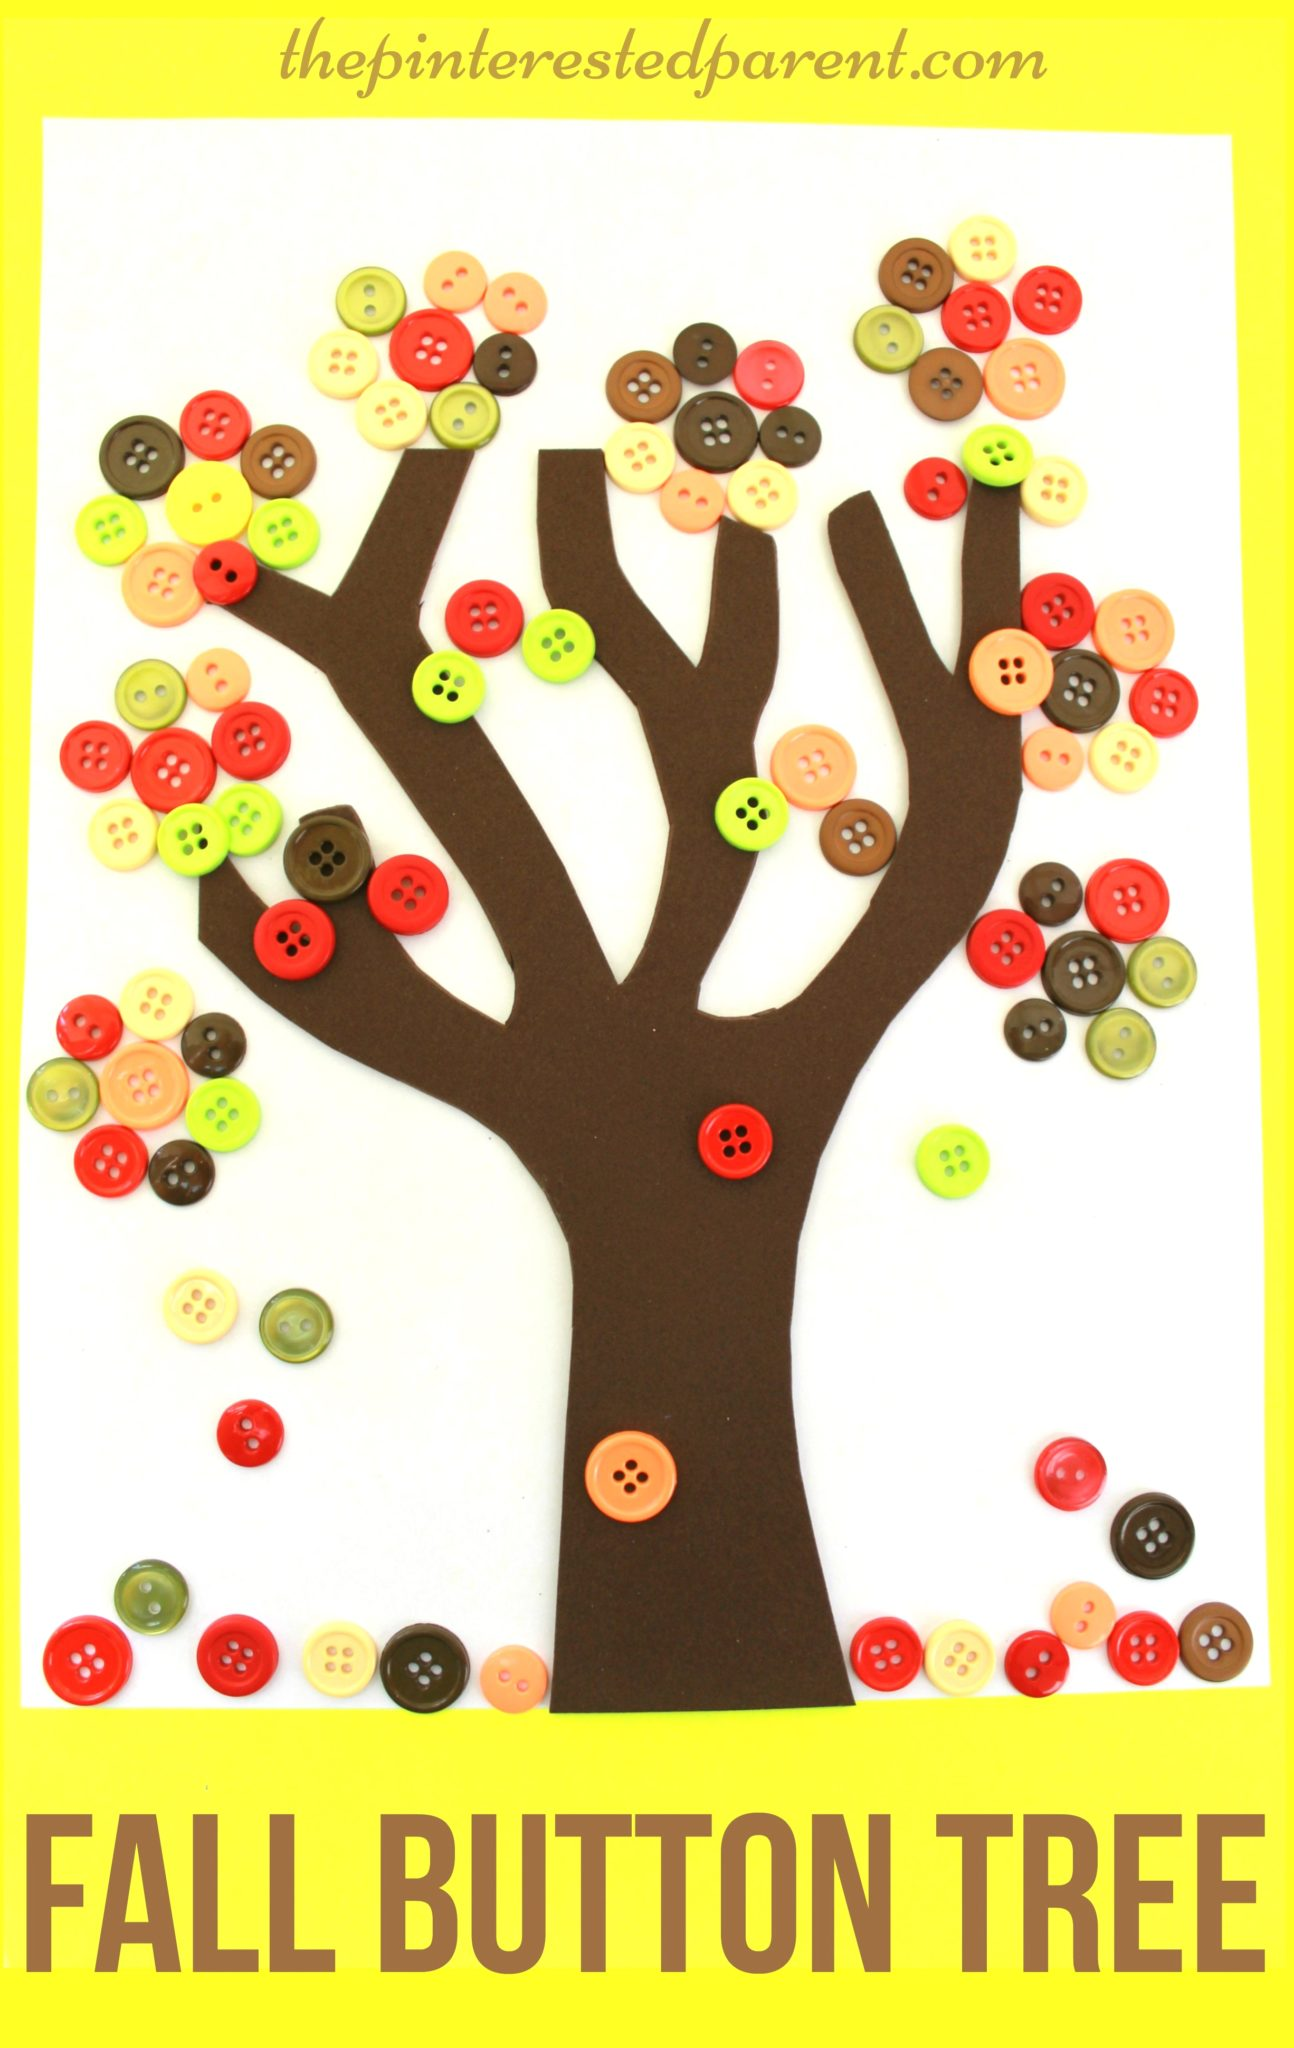 Autumn Button Tree The Pinterested Parent